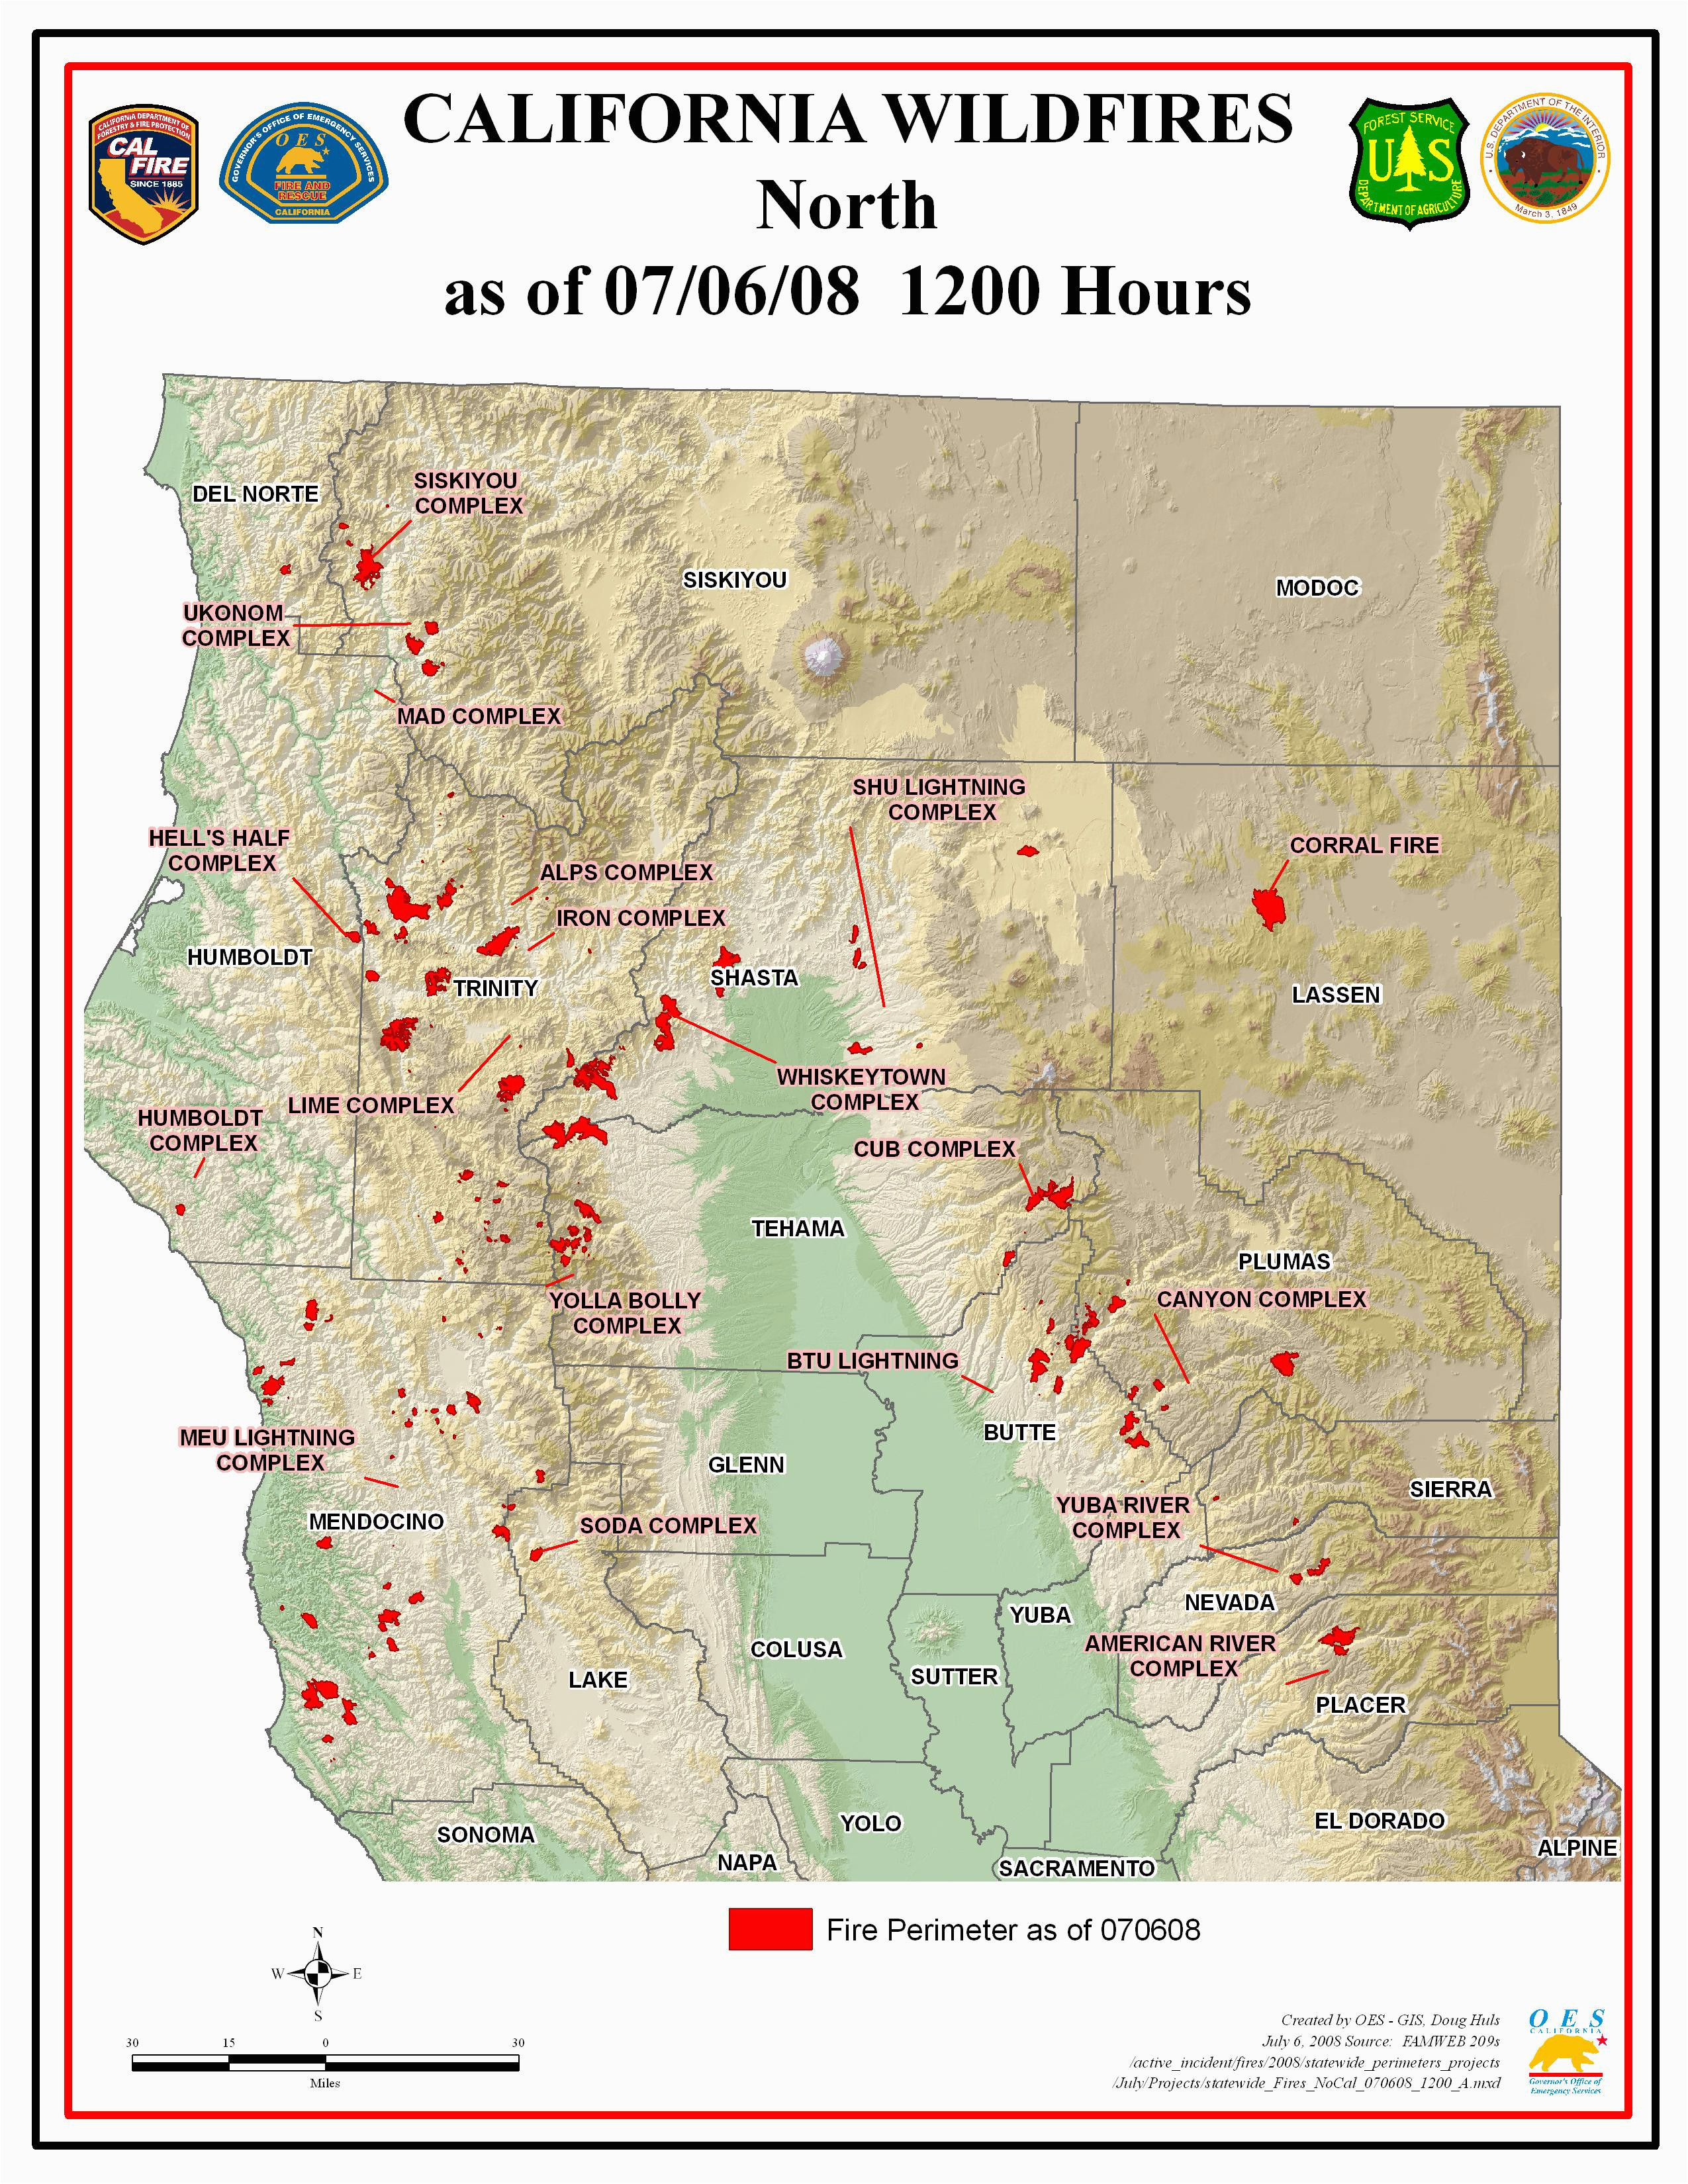 Map Of Current Fires In Northern California   Secretmuseum - Current Texas Wildfires Map